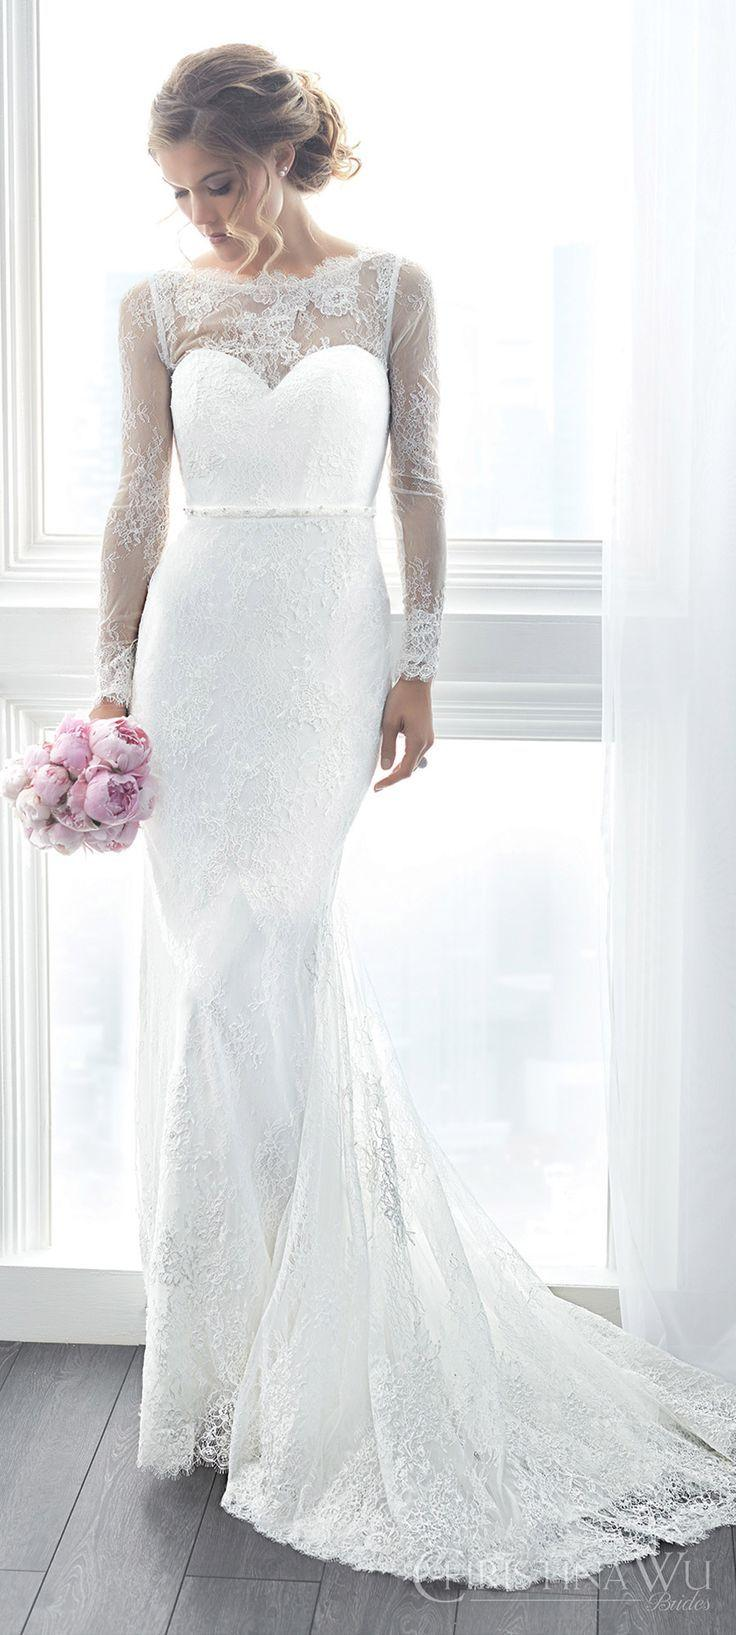 Boda - Wedding Dresses